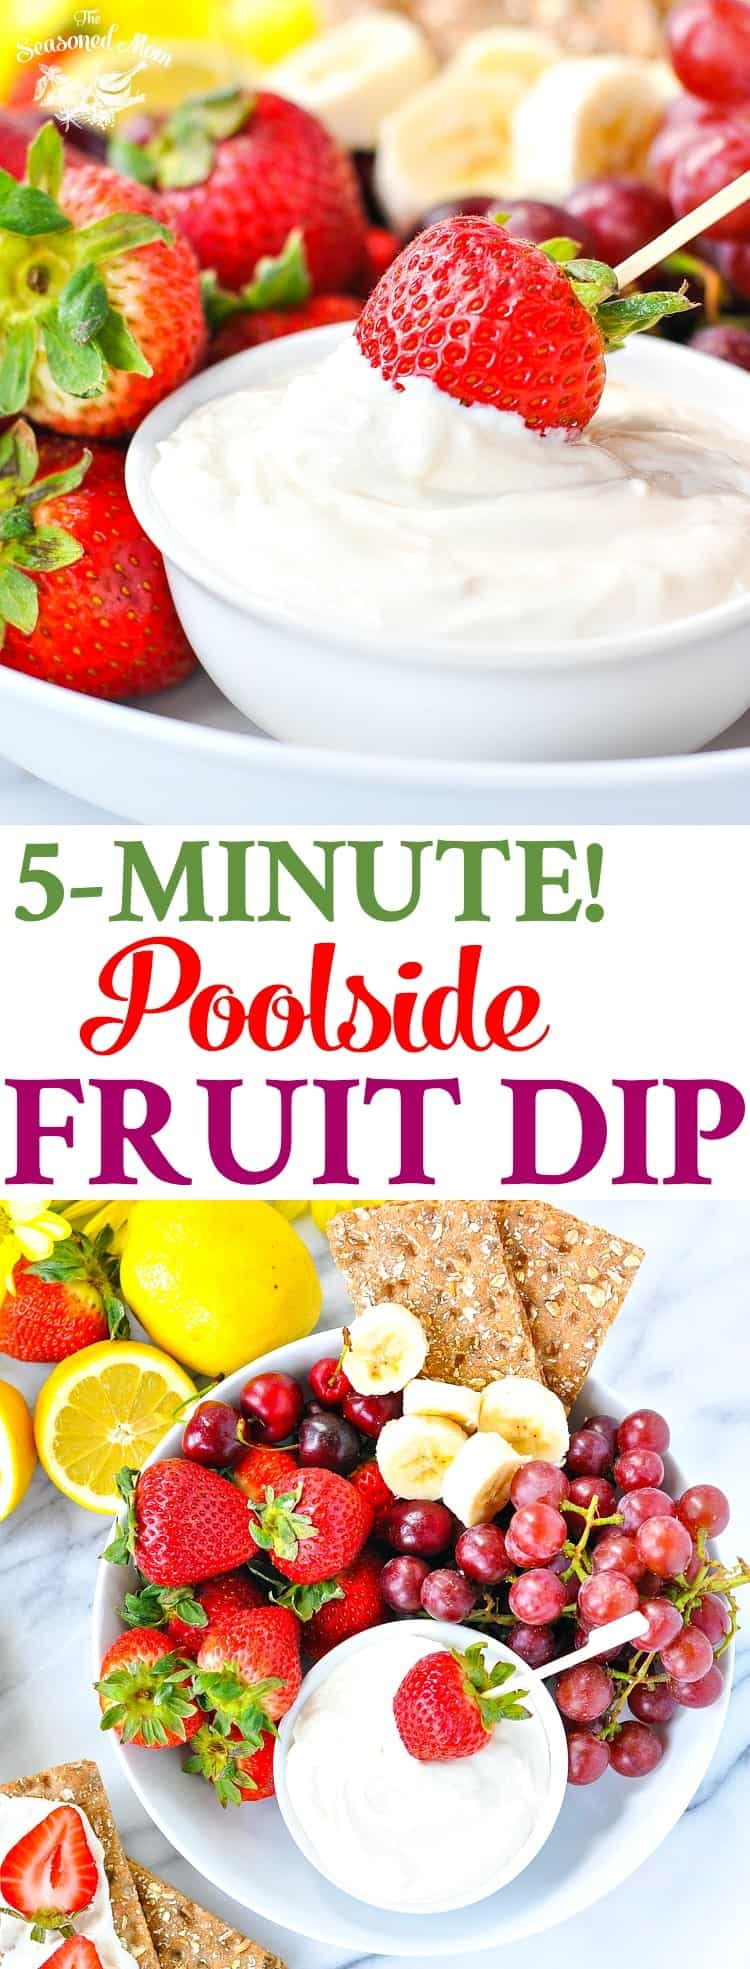 5-Minute Poolside Fruit Dip! Healthy Snacks for Kids | Snack Ideas | Snacks for Party | Snacks Healthy | Healthy 5 Ingredient or Less Recipes | Healthy Recipes | Healthy Snacks | Healthy Desserts | Dip Recipes | Dips | Appetizers | Gluten Free